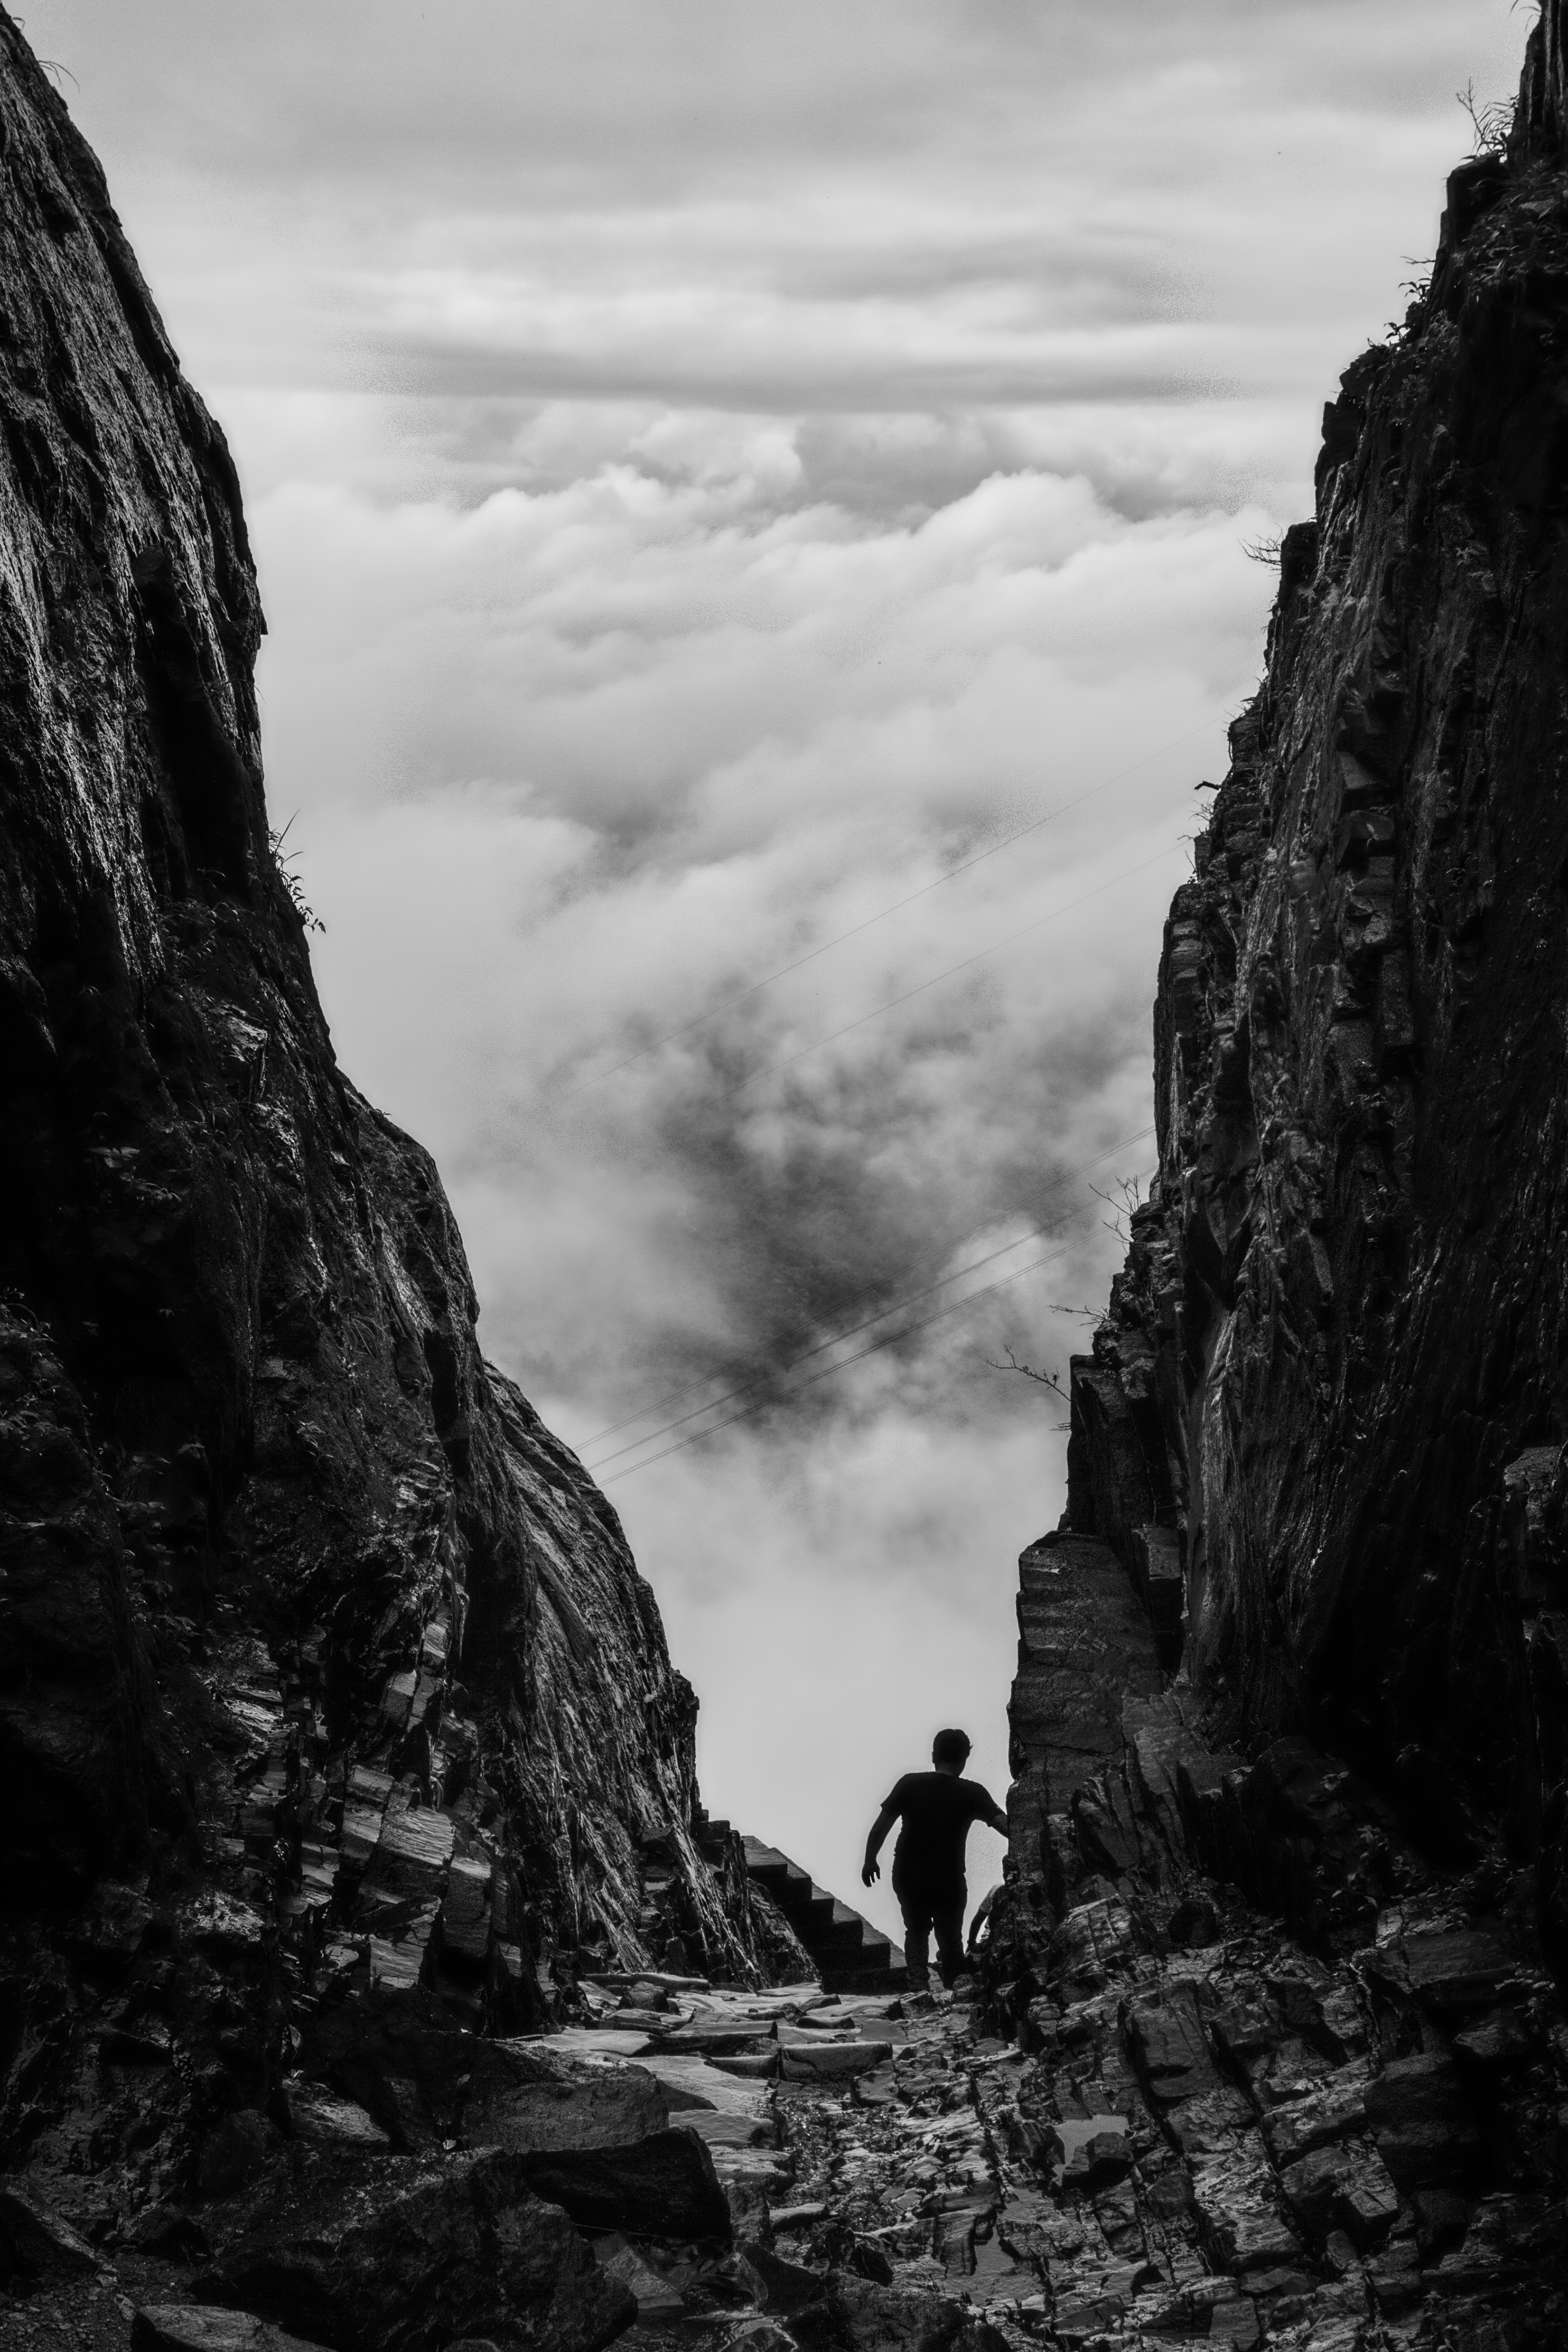 Custom Iphone X Wallpaper Man Standing On A Cliff 183 Free Stock Photo